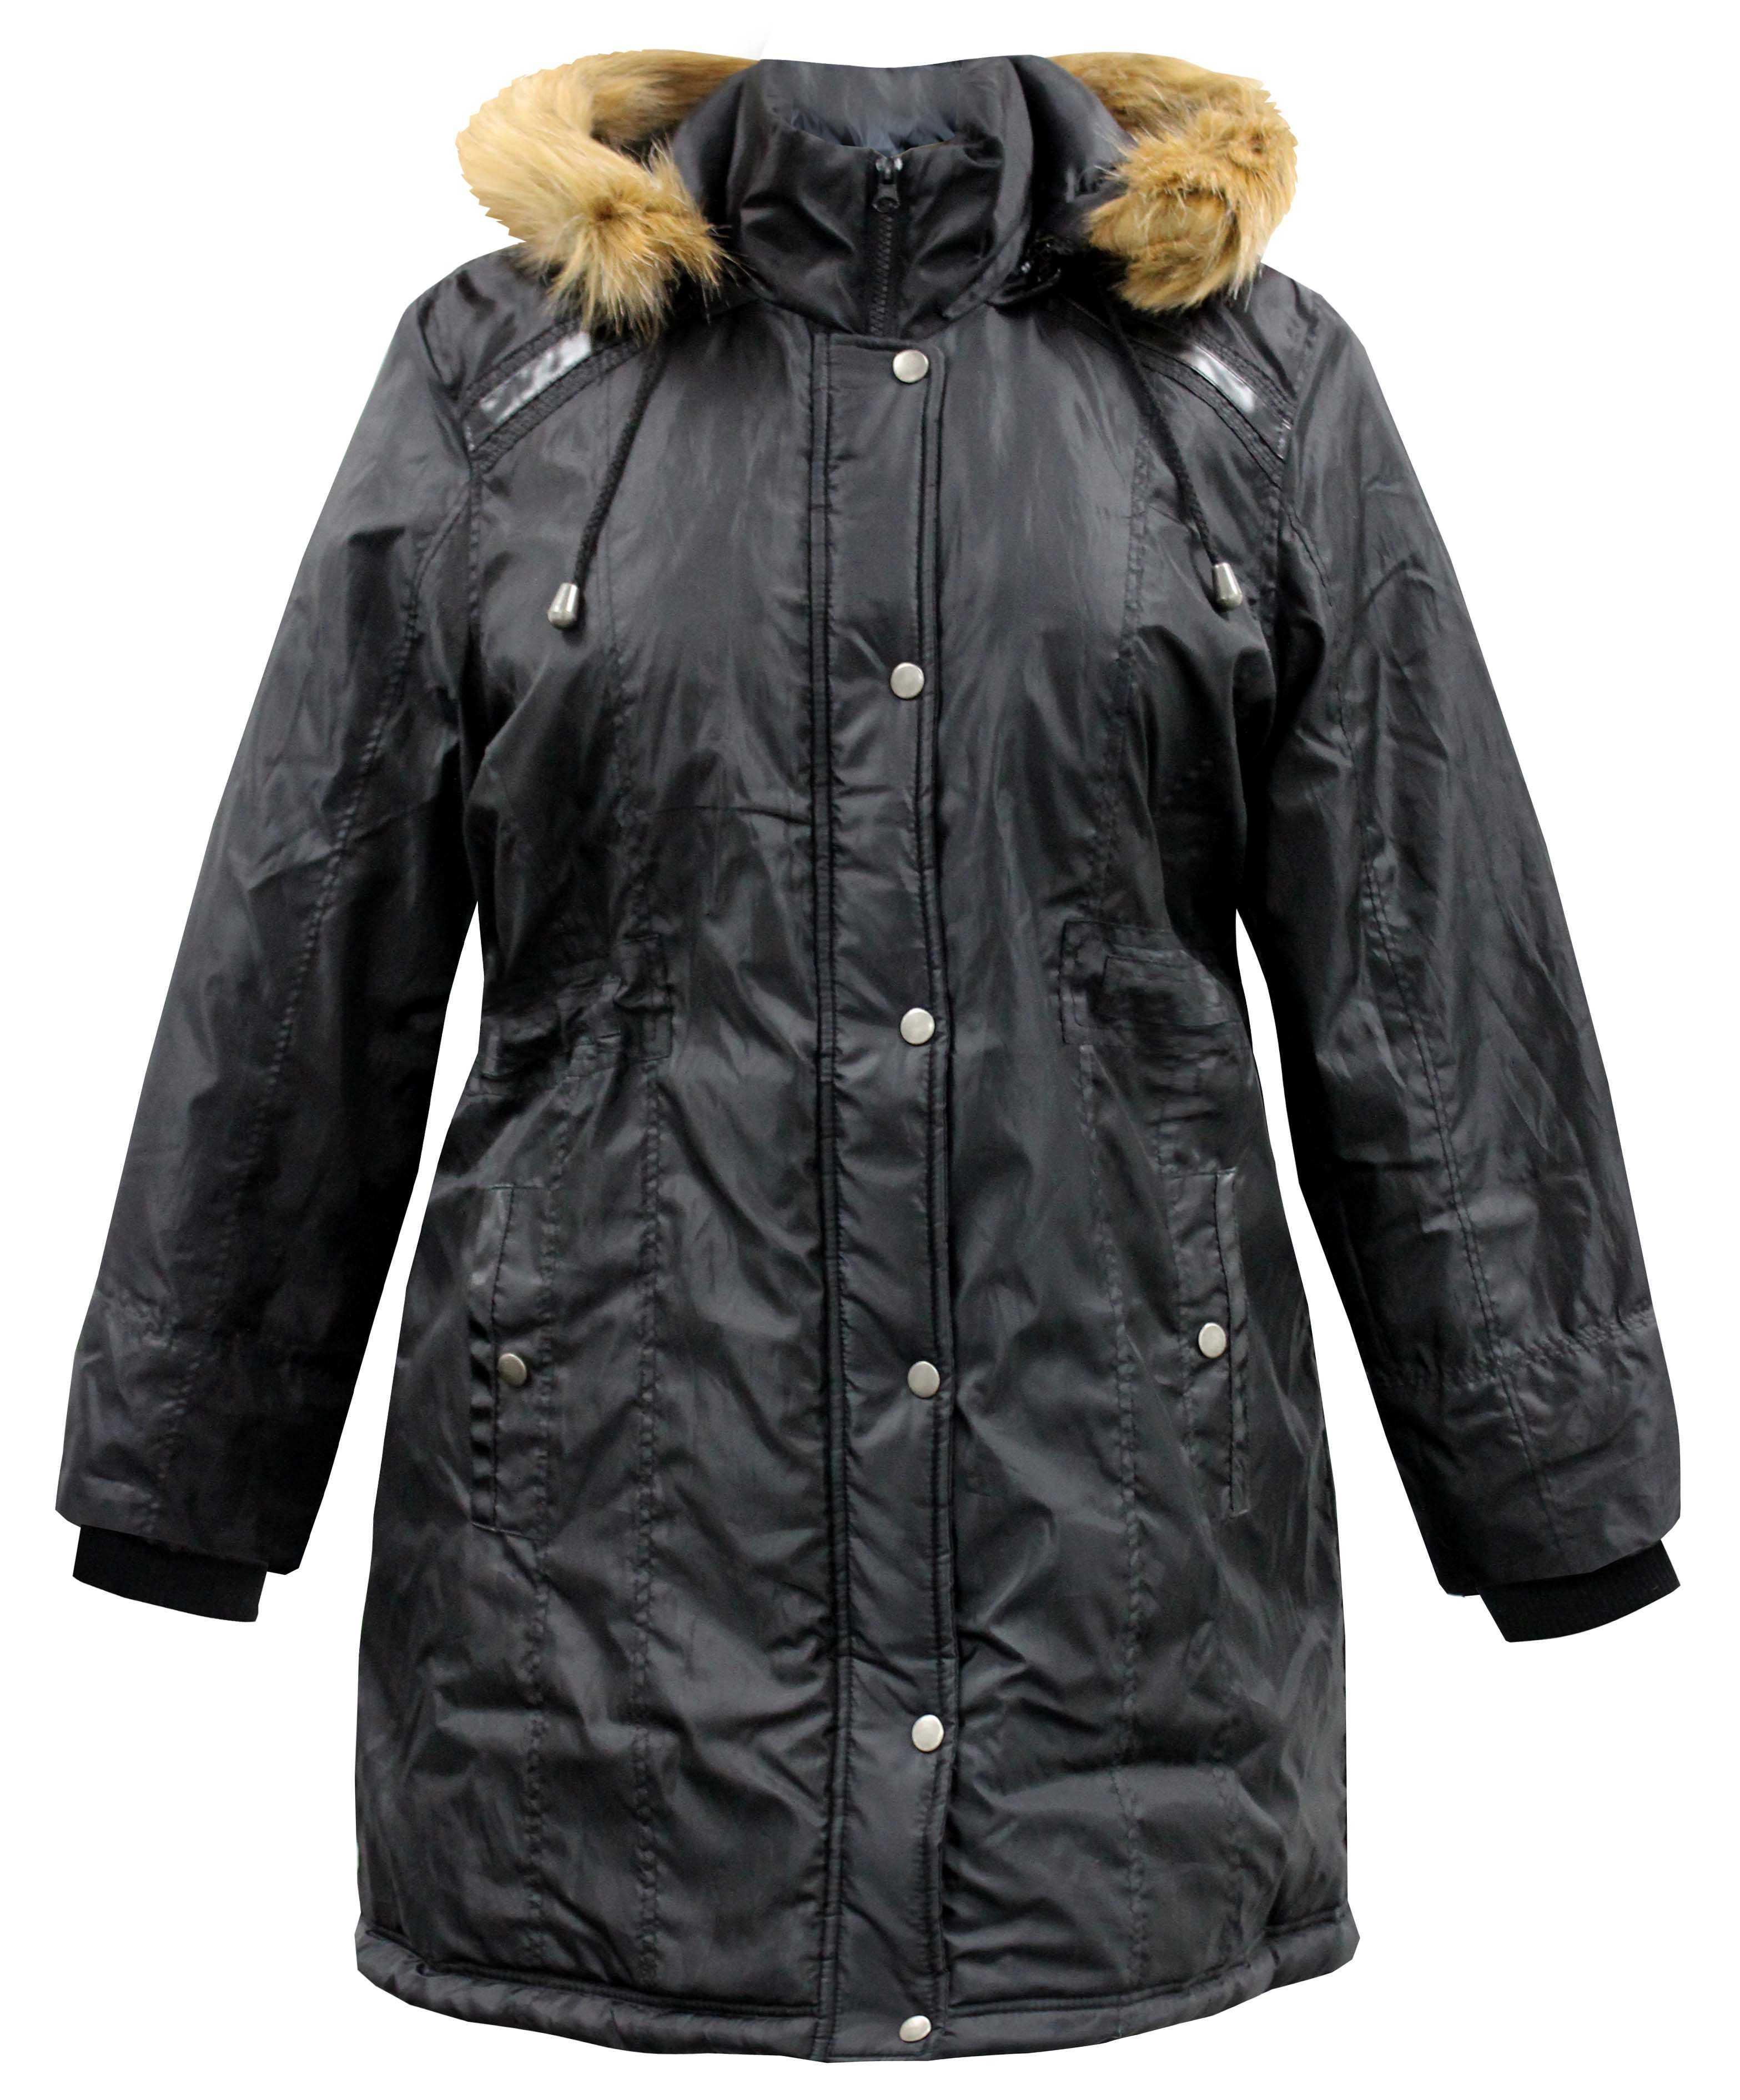 Find great deals on eBay for plus size waterproof coats. Shop with confidence.